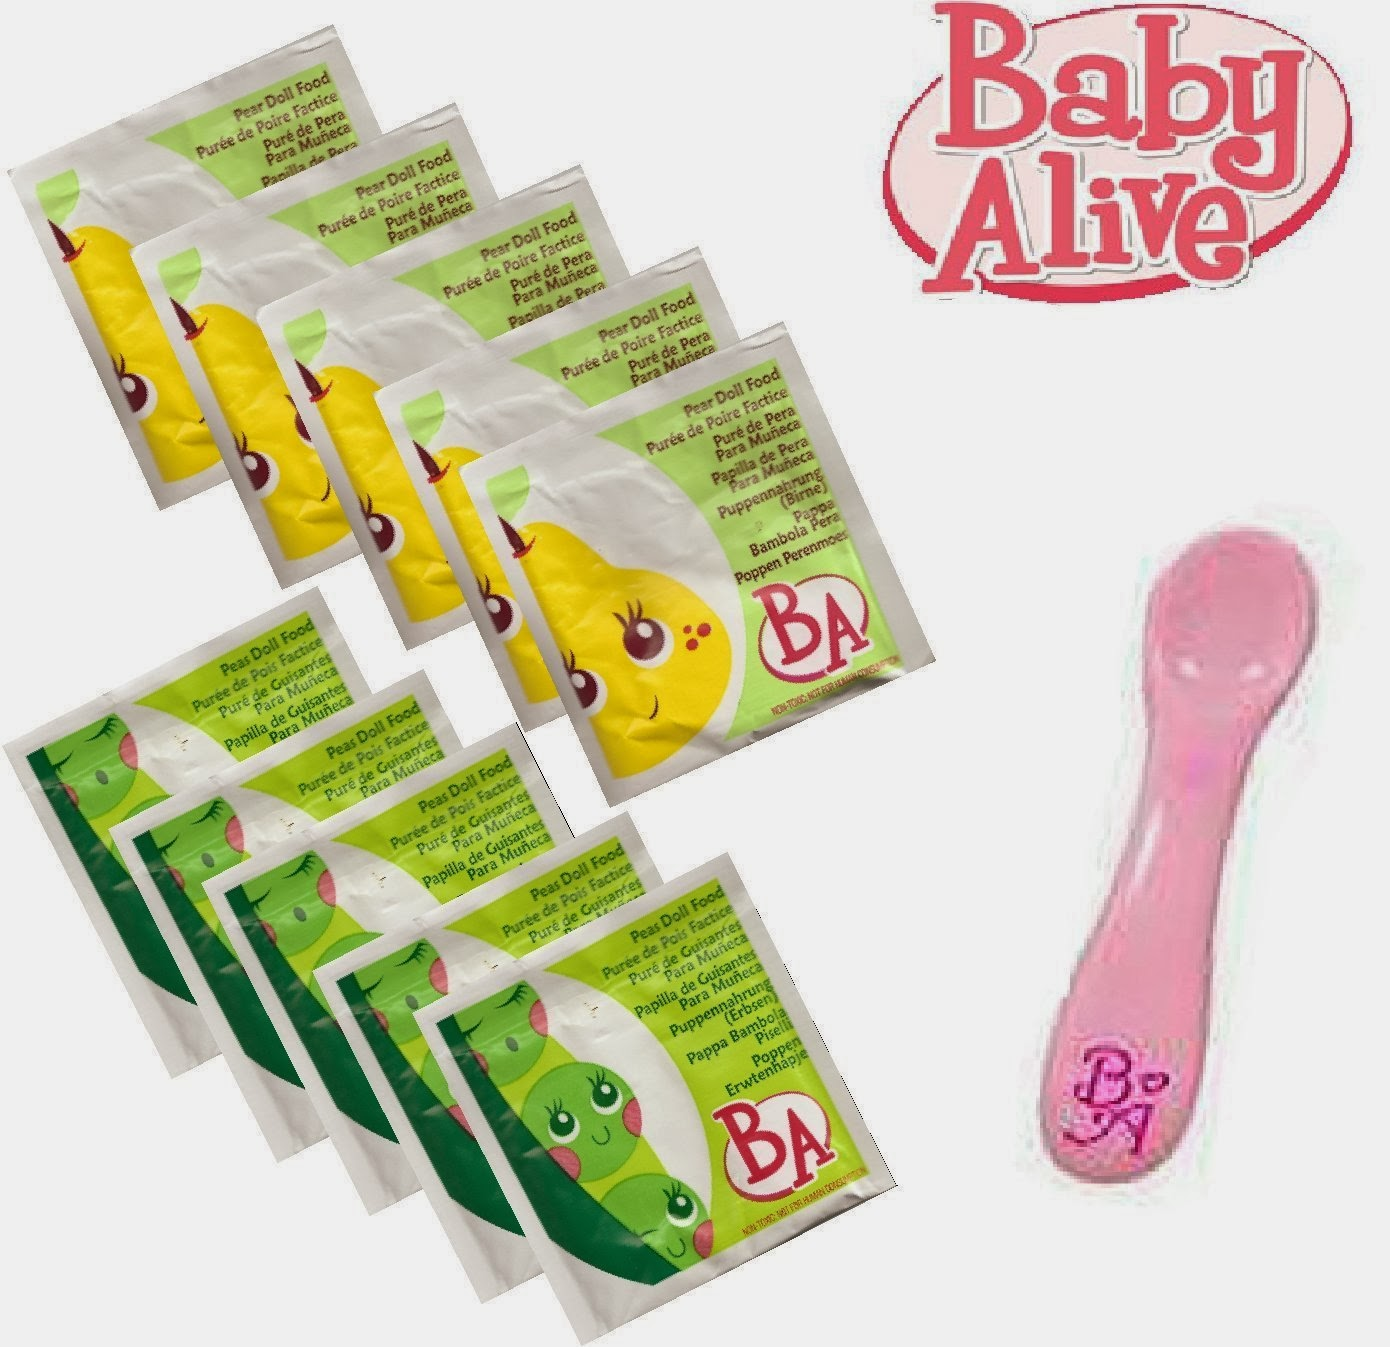 What is in Baby Alive Food?